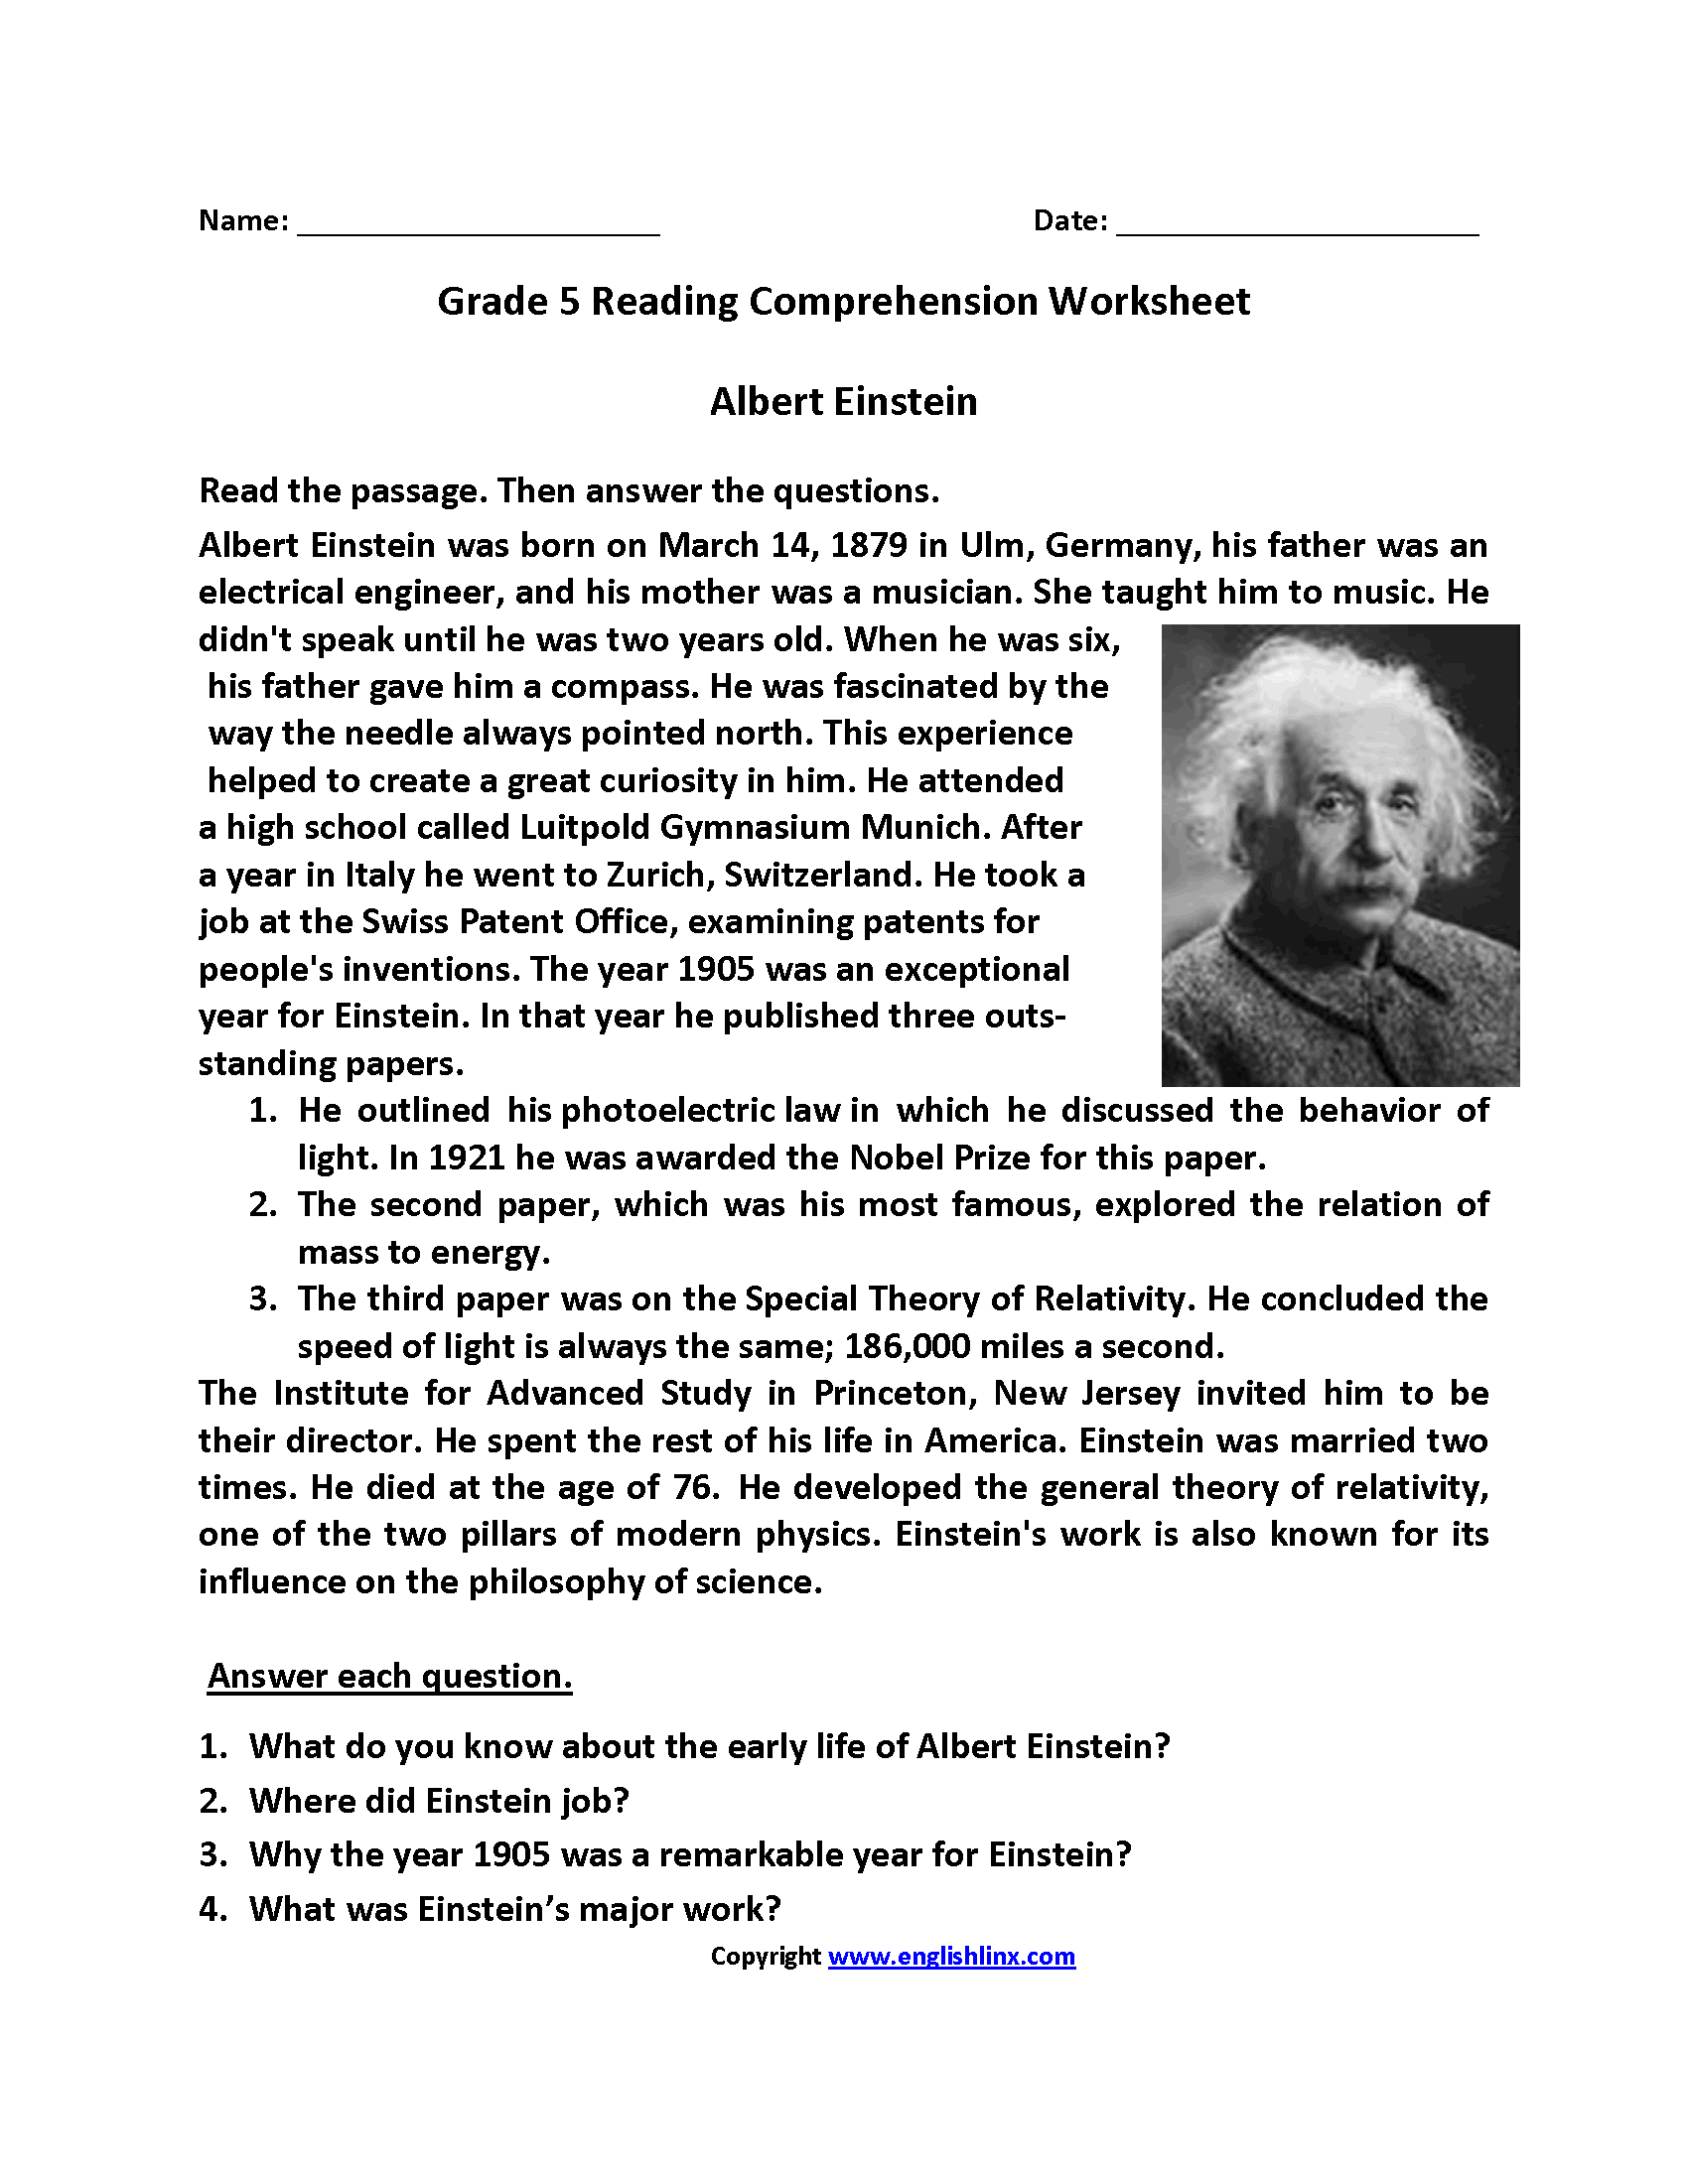 Worksheet For 5th Grade